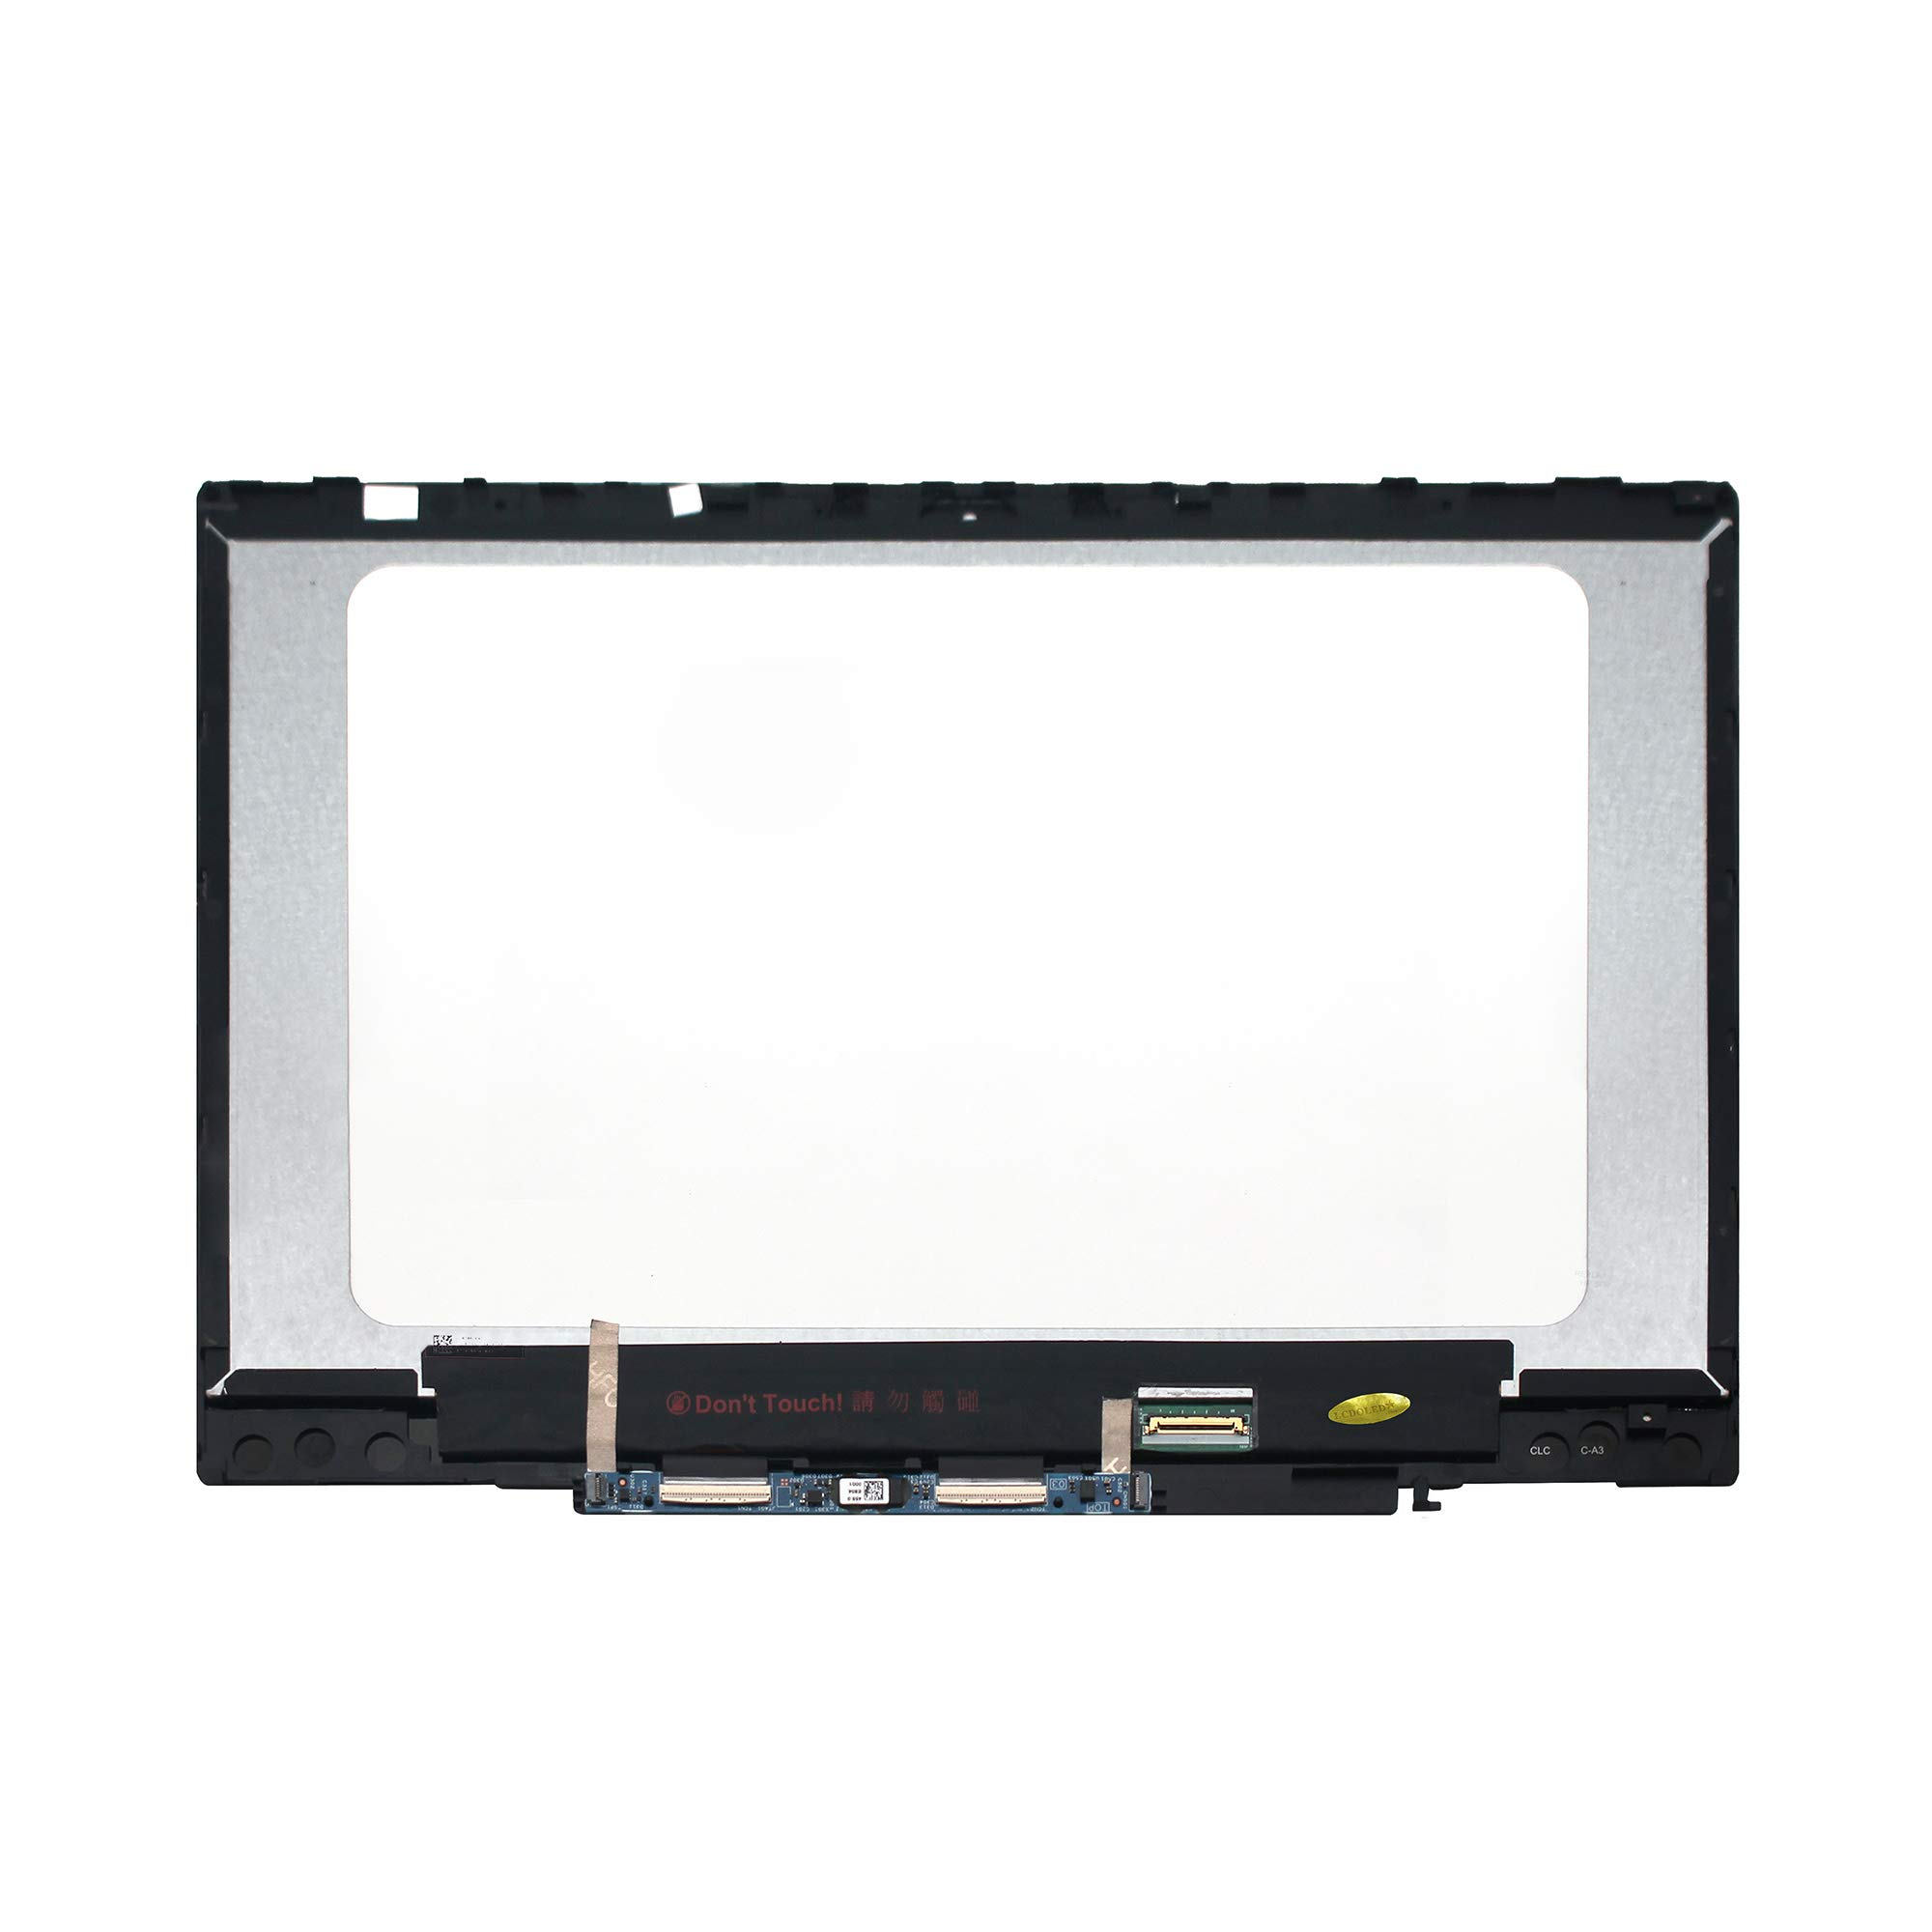 LCDOLED 14.0'' 1920x1080 IPS LCD Display Touch Screen Digitizer Assembly + Bezel + Board Replacement for HP Pavilion x360 14m-cd0000 14-cd0011nr 14m-cd0001dx 14m-cd0003dx 14m-cd0005dx 14m-cd0006dx by LCDOLED (Image #2)